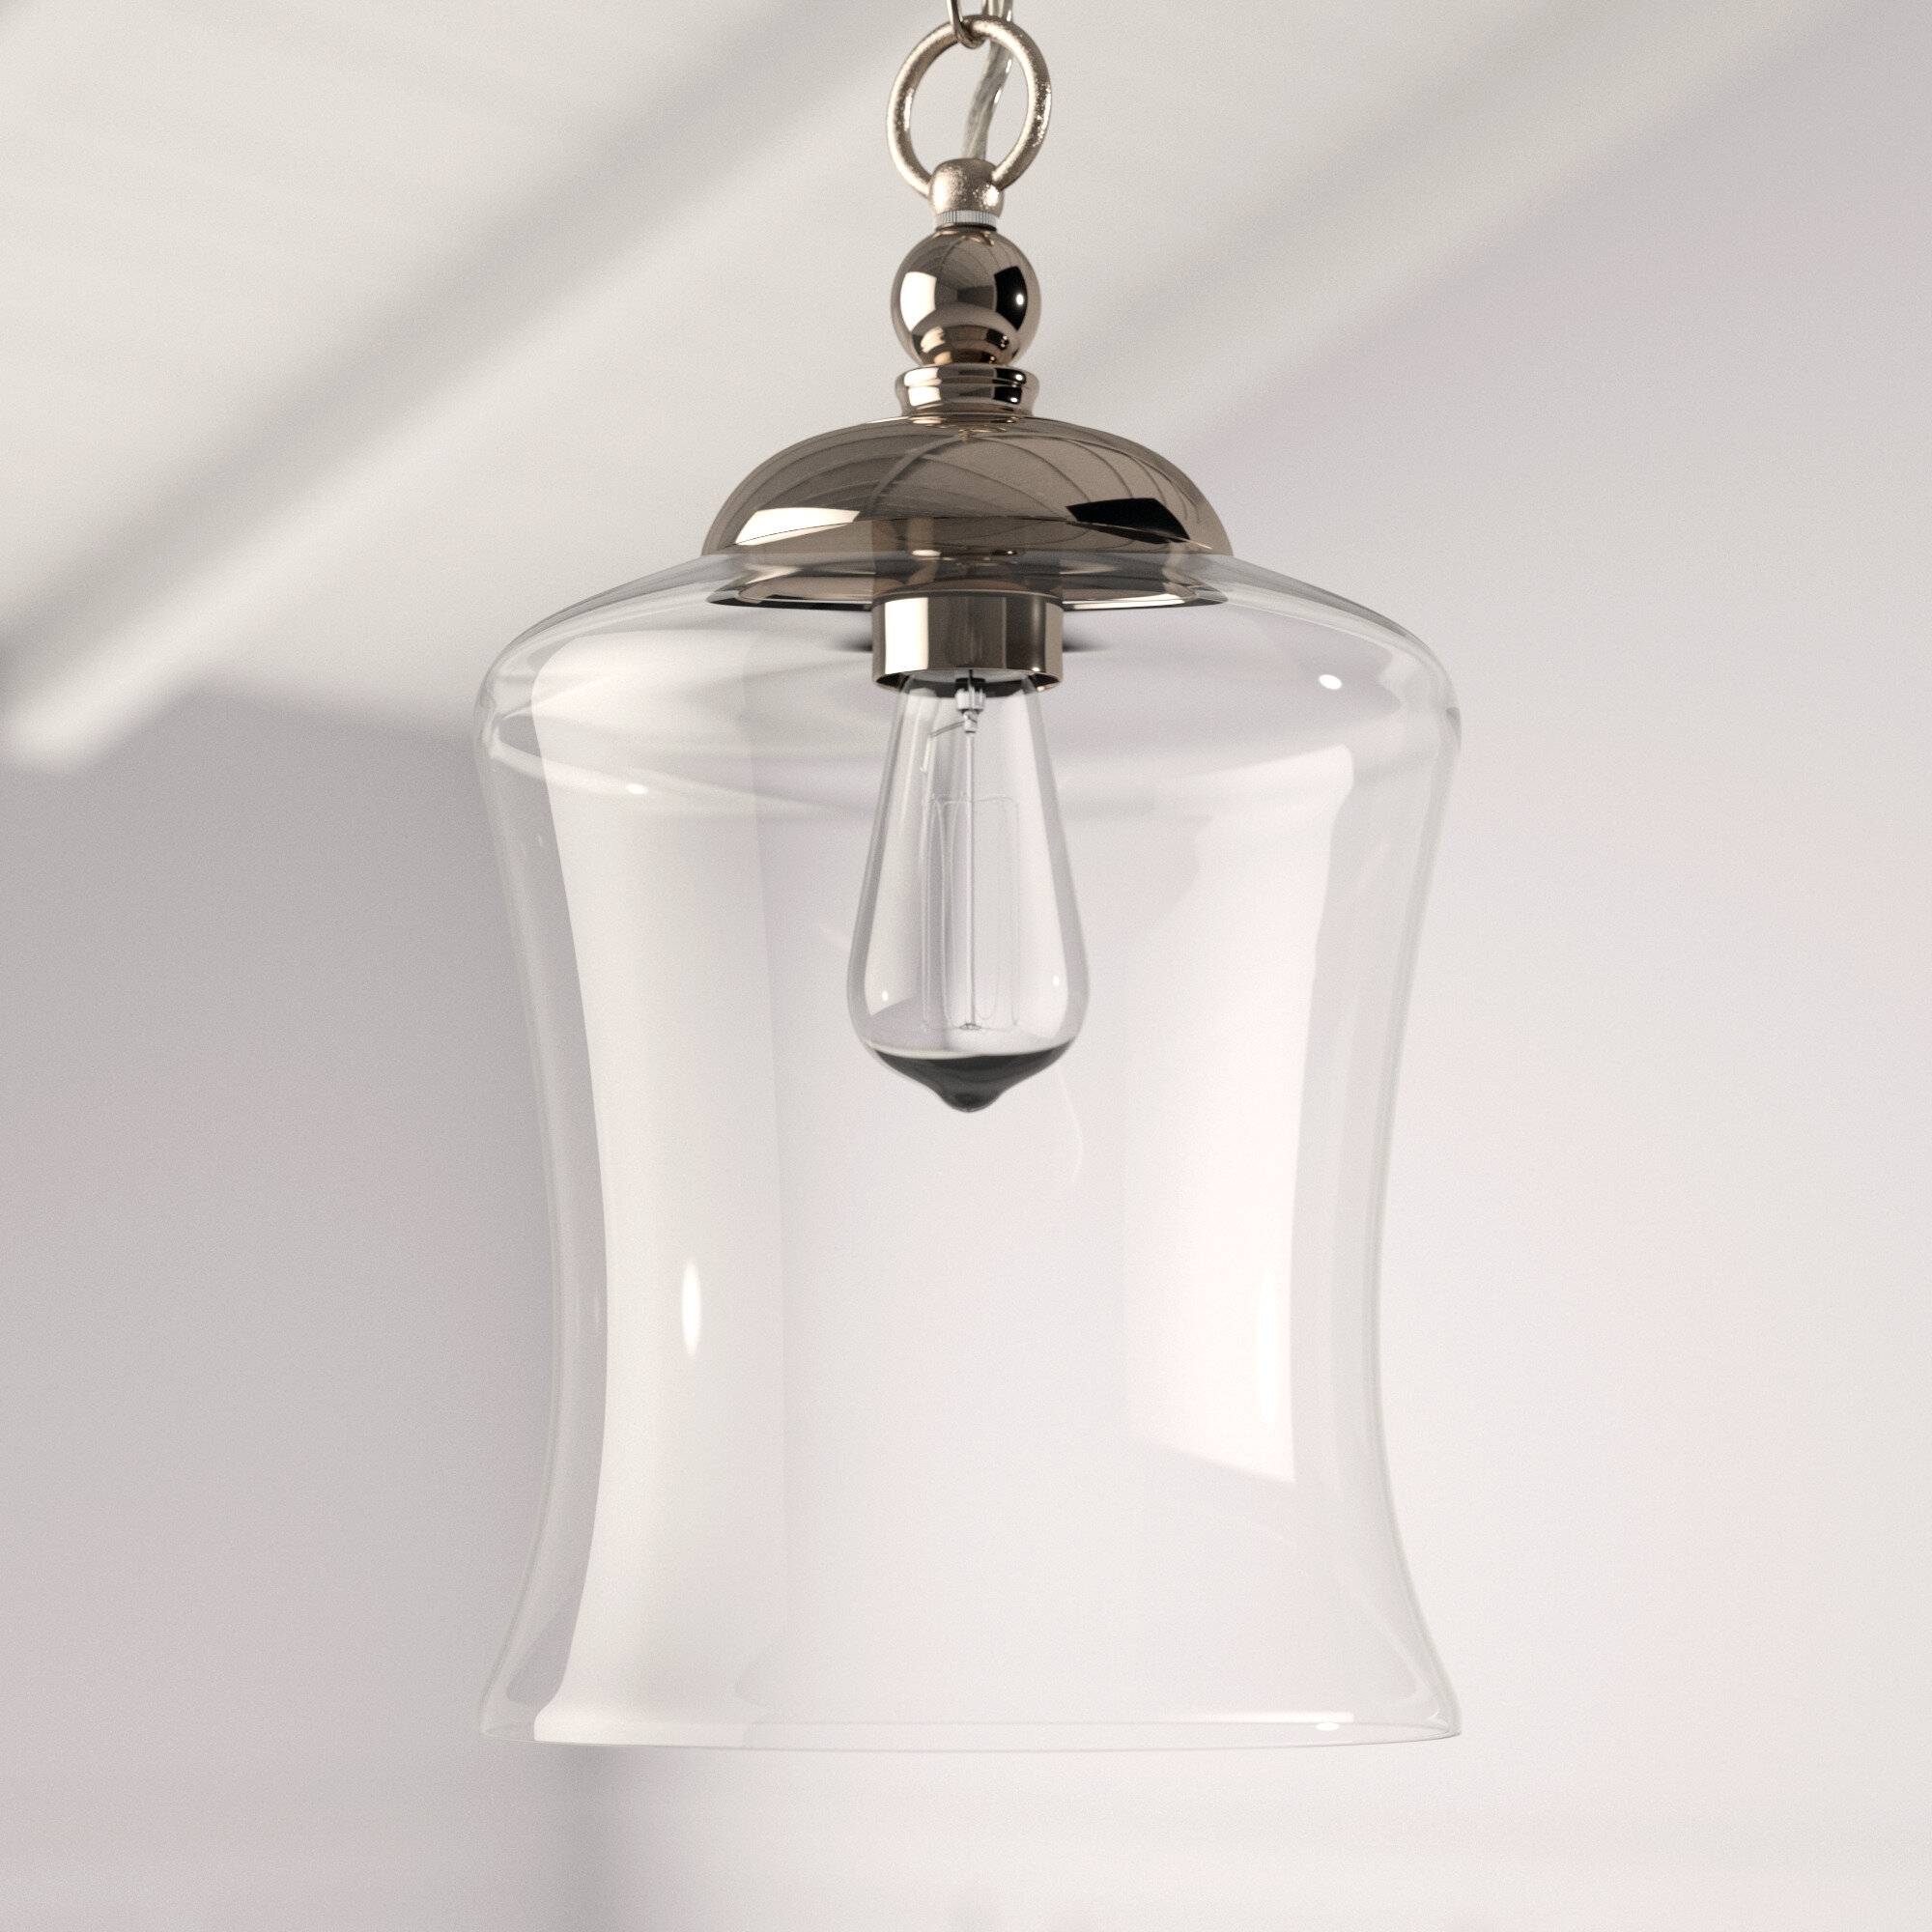 Wentzville 1 Light Single Bell Pendant With Regard To Sargent 1 Light Single Bell Pendants (View 30 of 30)